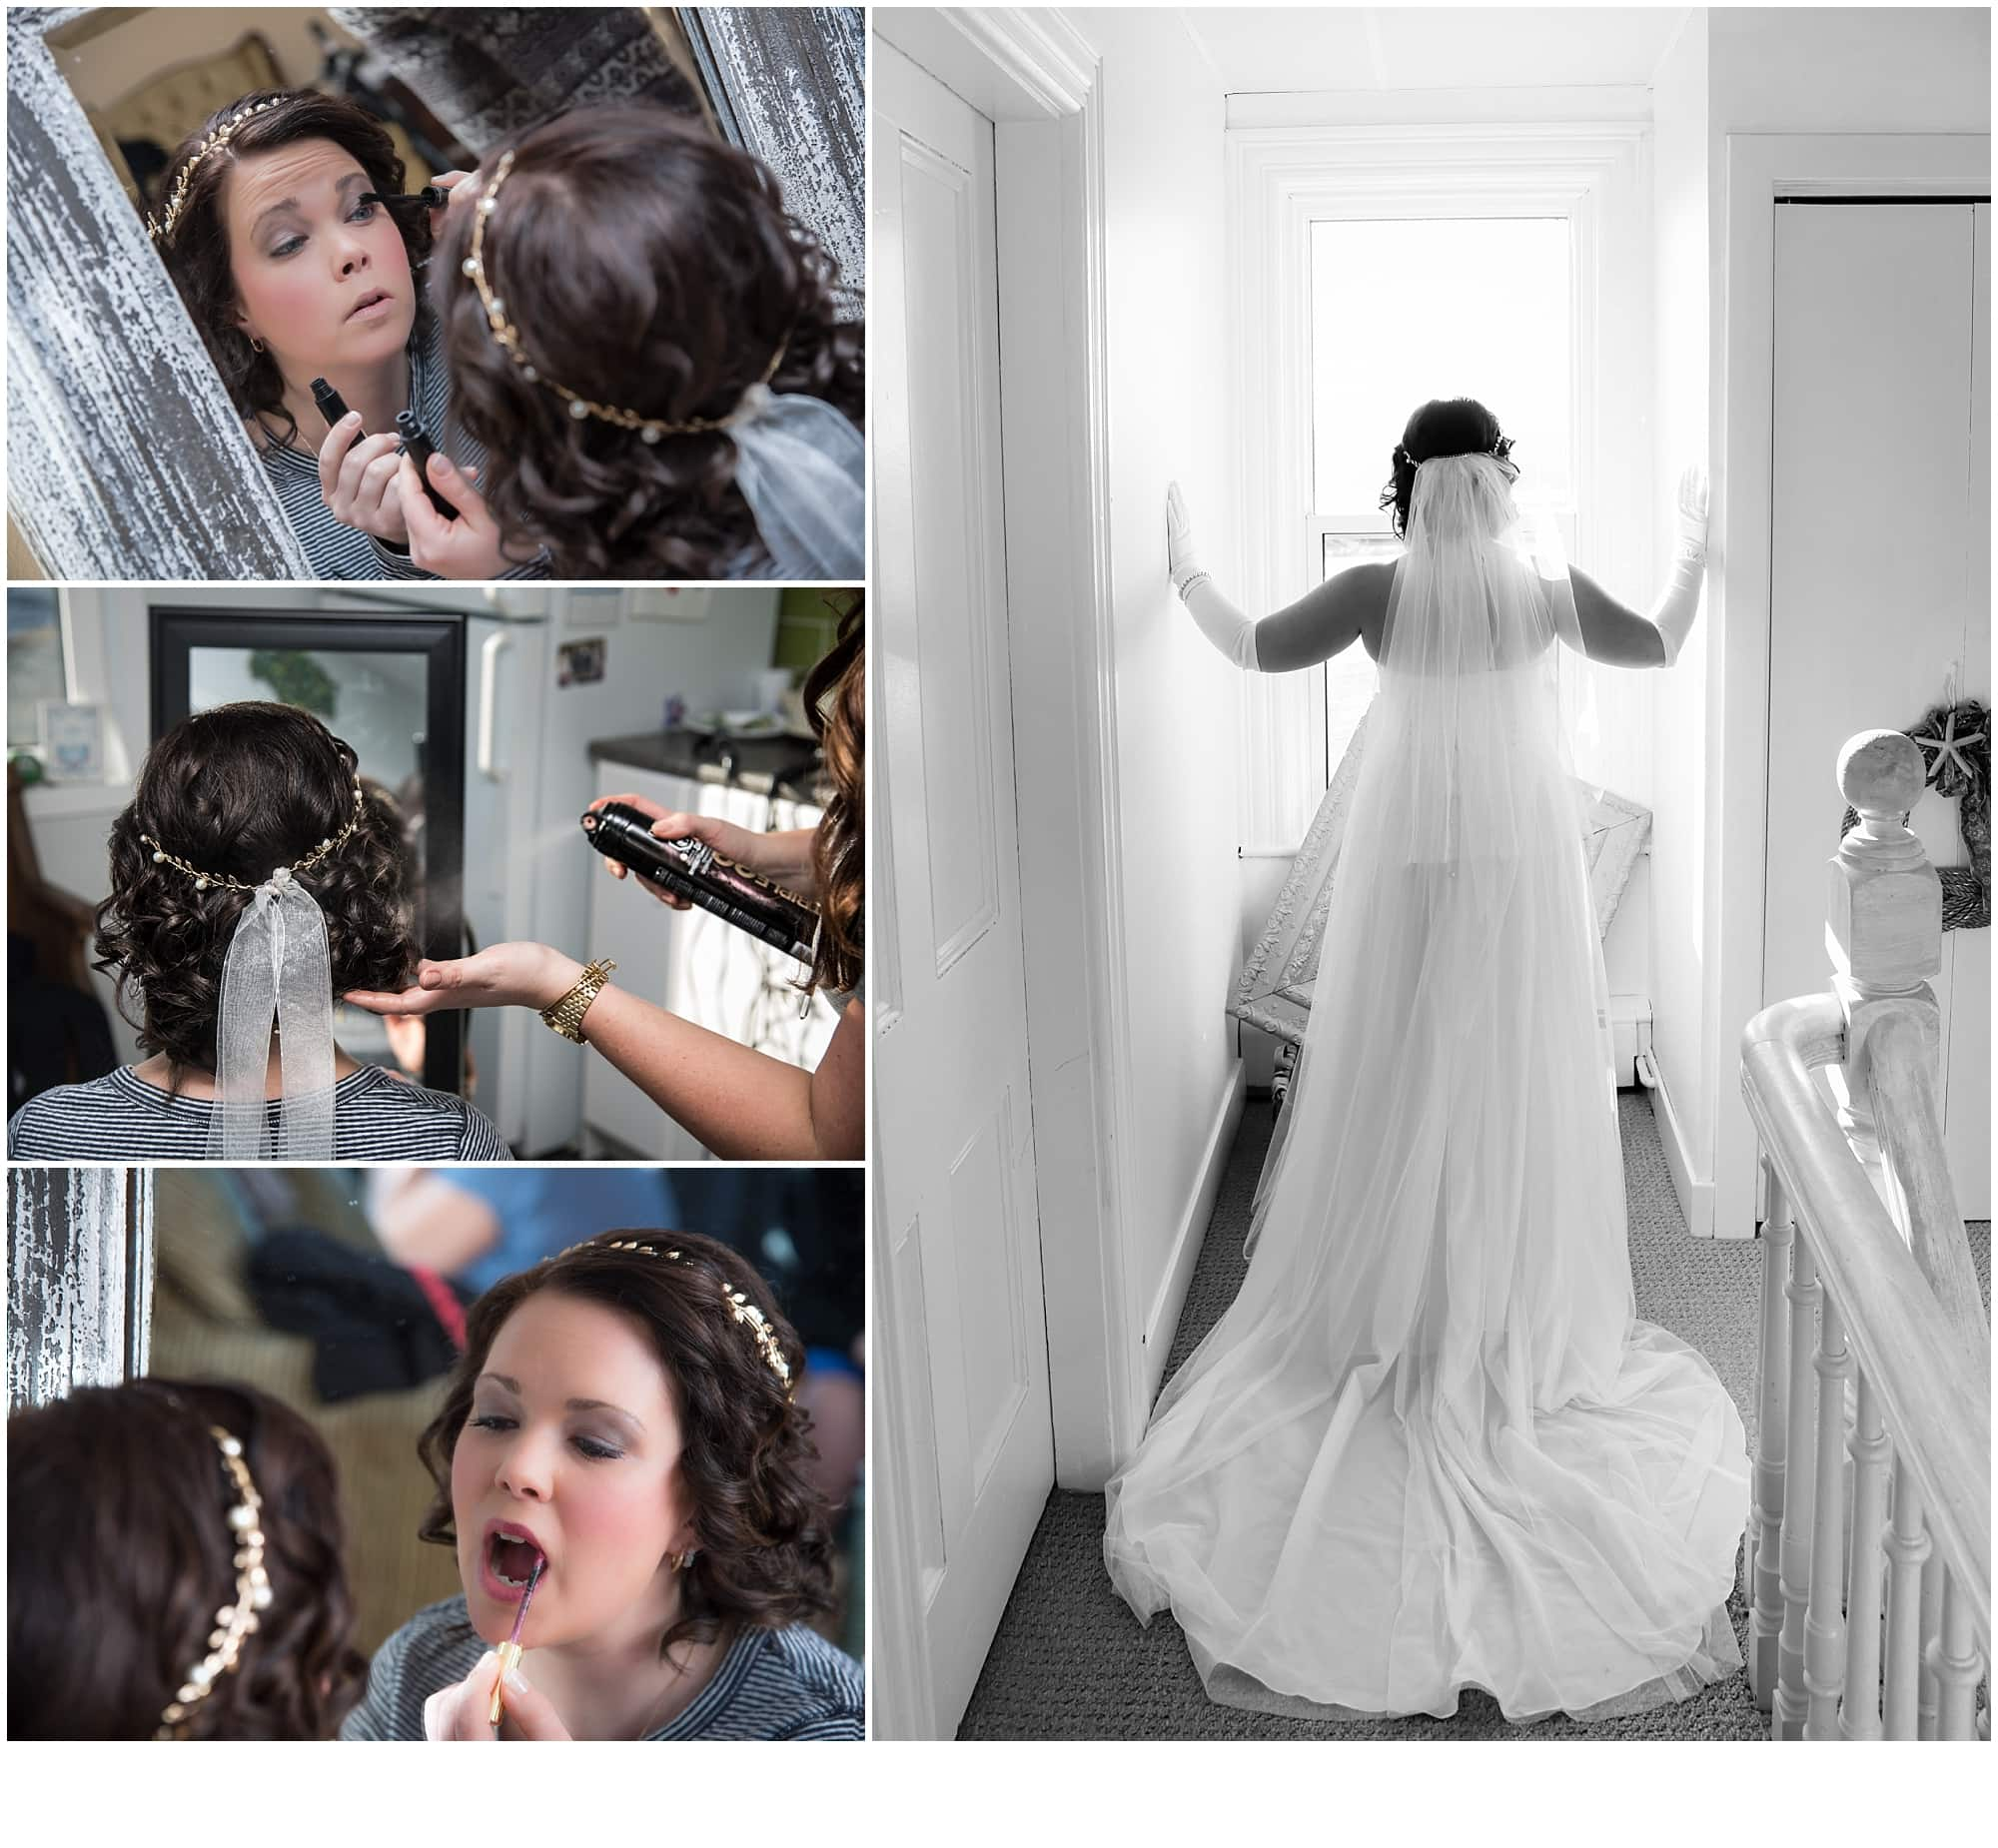 The bride getting ready during bridal prep putting her bridal makeup on and having her hair styled.